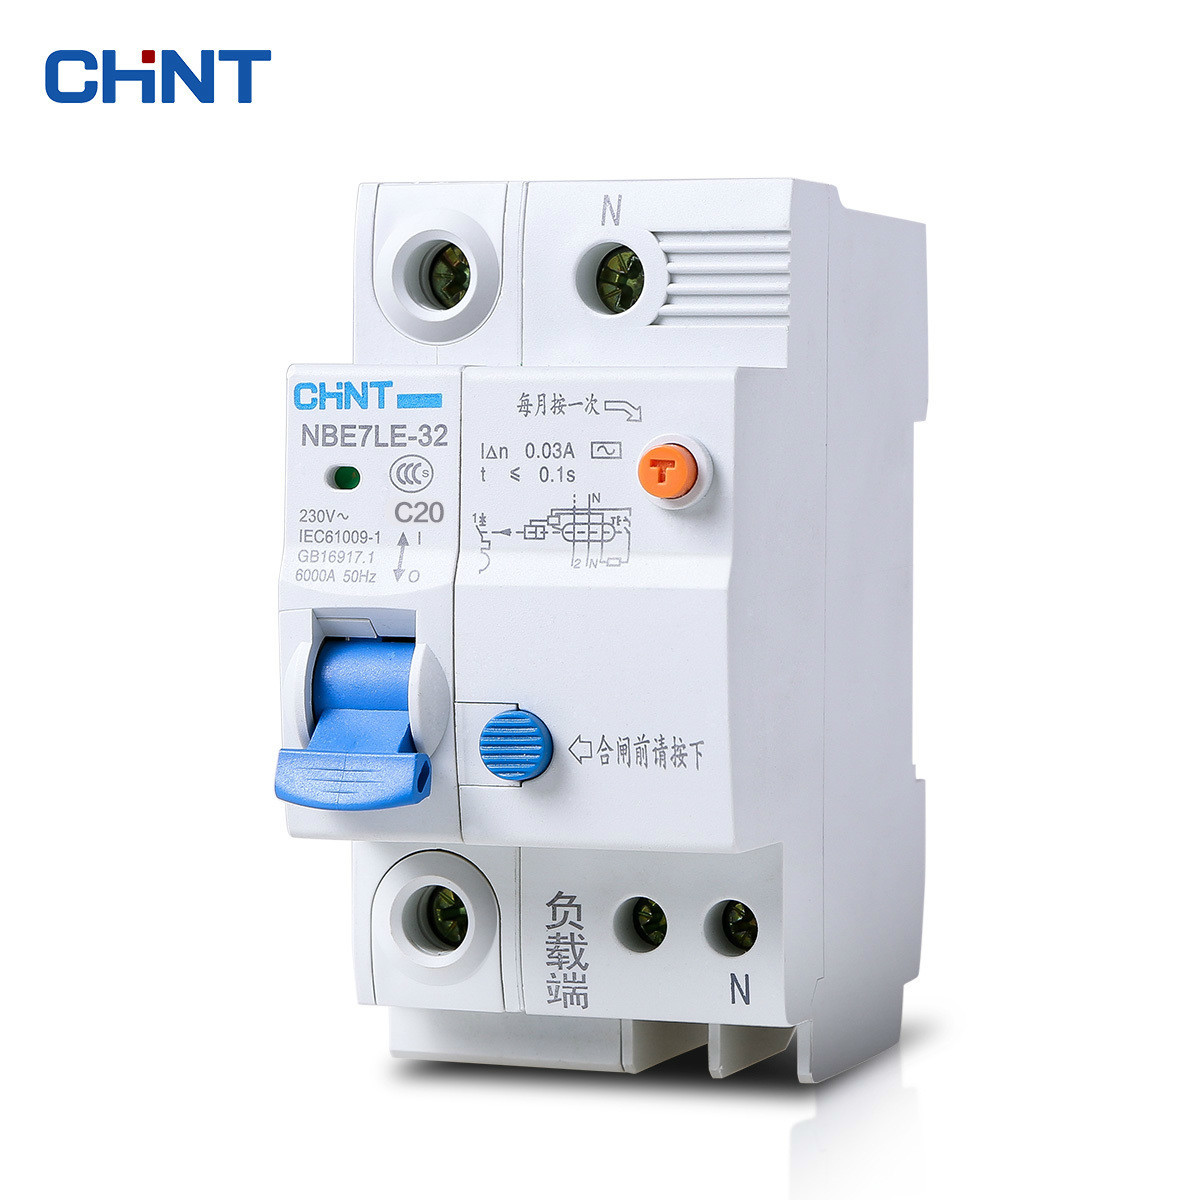 Chint Earth Leakage Circuit Breaker Dz47le 32 1p N C20 230v 20a Shock Sensor Development Switch Nbe7le Electric Protector